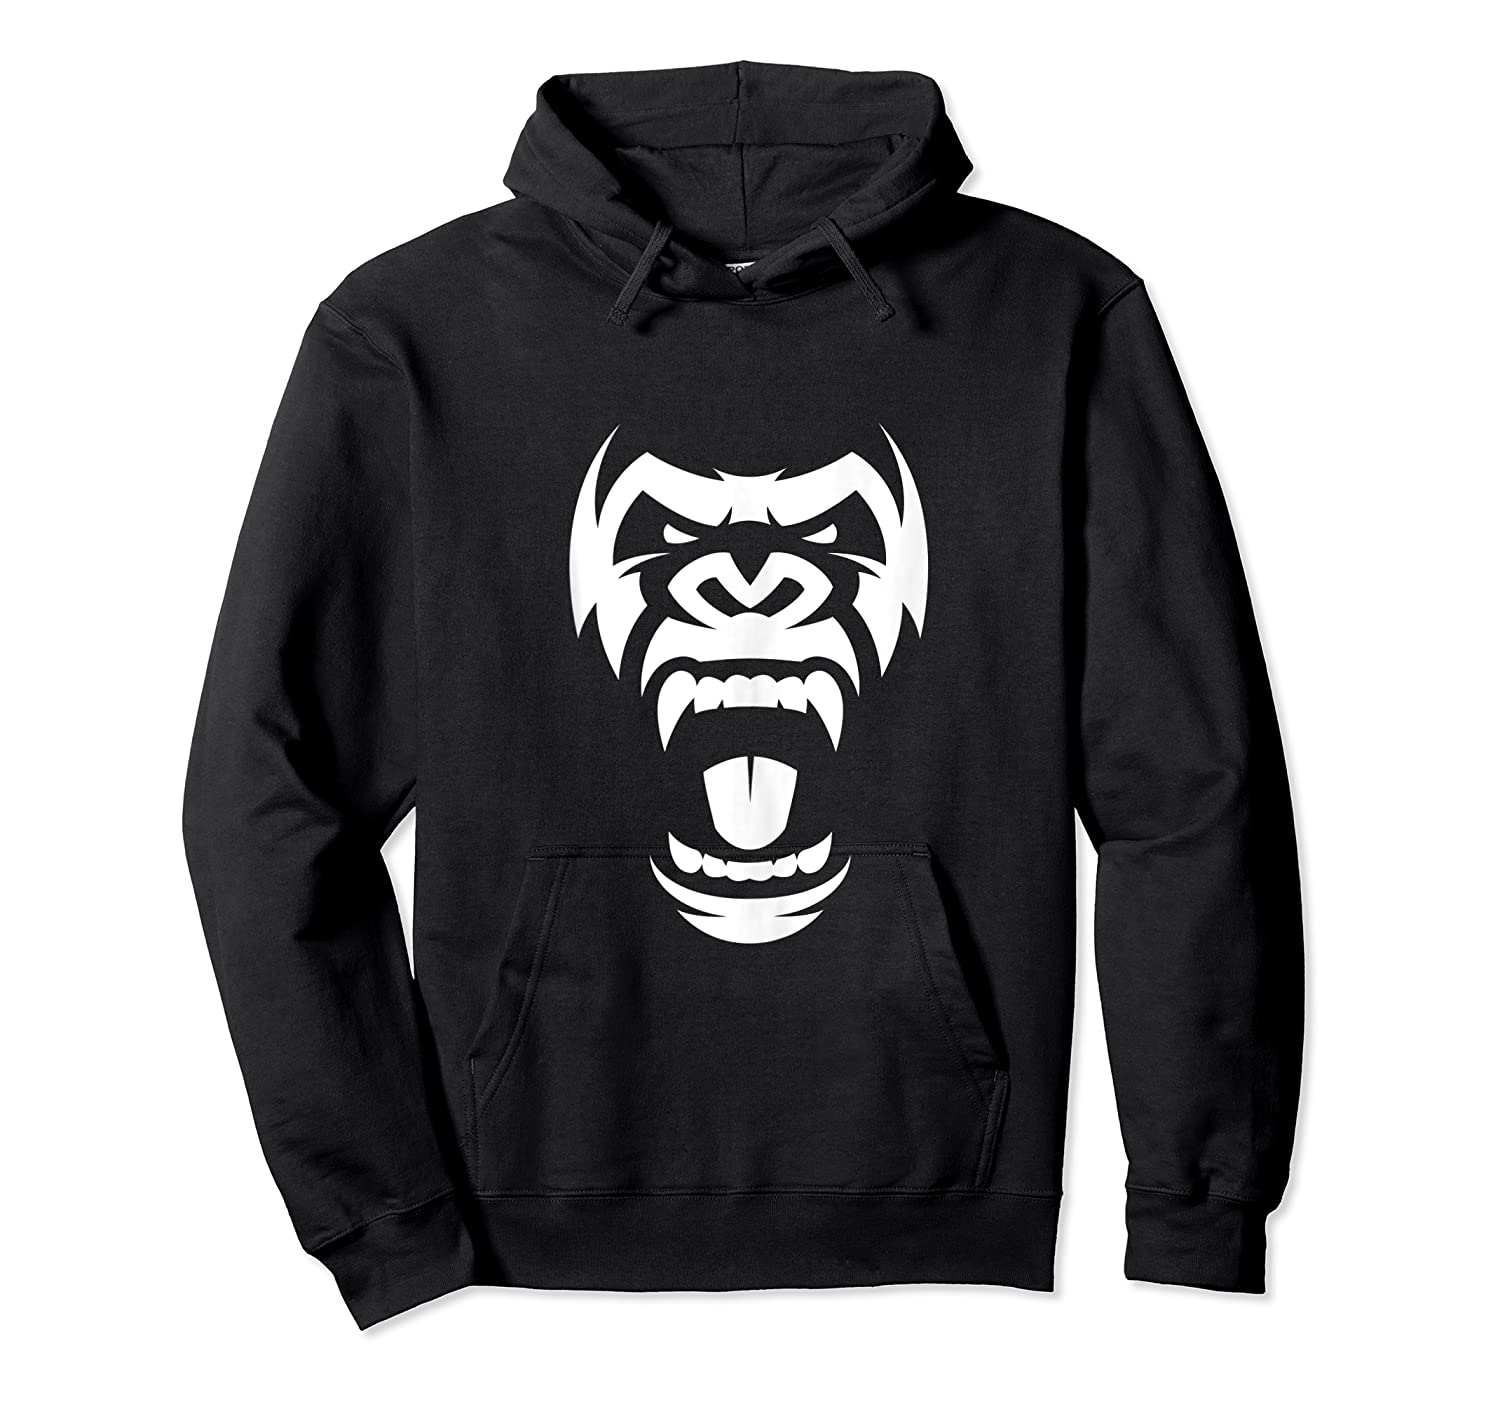 Angry Gorilla Furious Silverback Shirts Unisex Pullover Hoodie